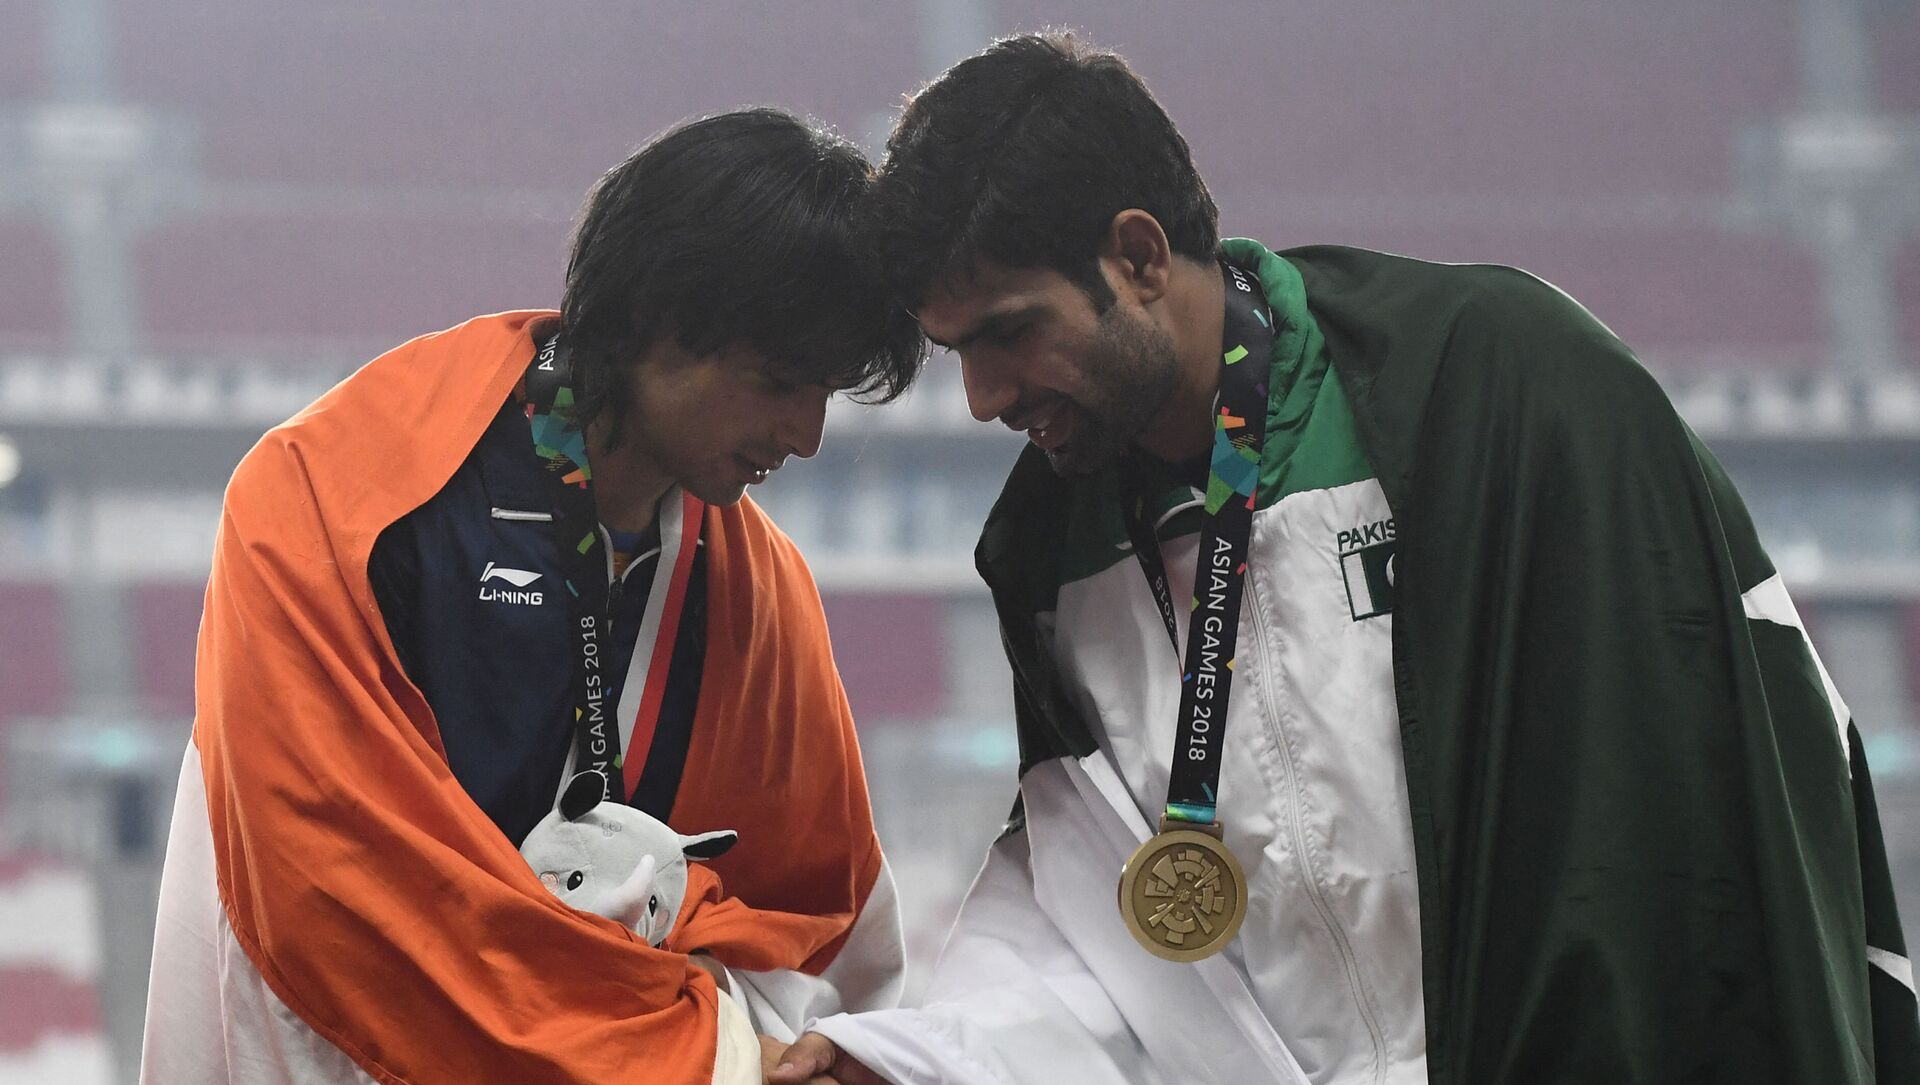 Gold medallist India's Neeraj Chopra (L) shakes hands with bronze medallist Pakistan's Arshad Nadeem during the victory ceremony for the men's javelin throw athletics event during the 2018 Asian Games in Jakarta on August 27, 2018.  - Sputnik International, 1920, 04.08.2021